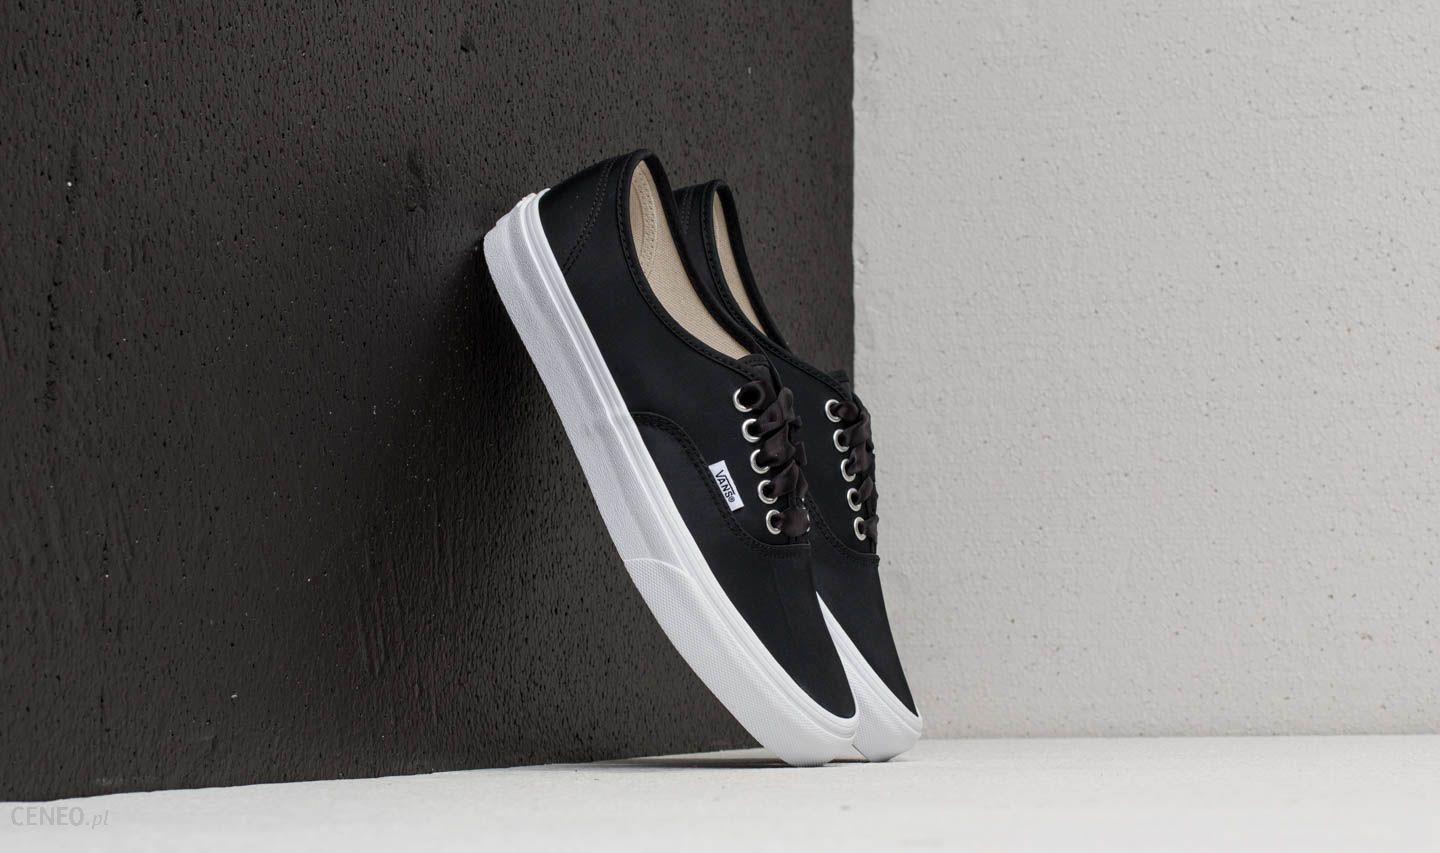 Vans Authentic (Satin Lux) Black True White Ceneo.pl